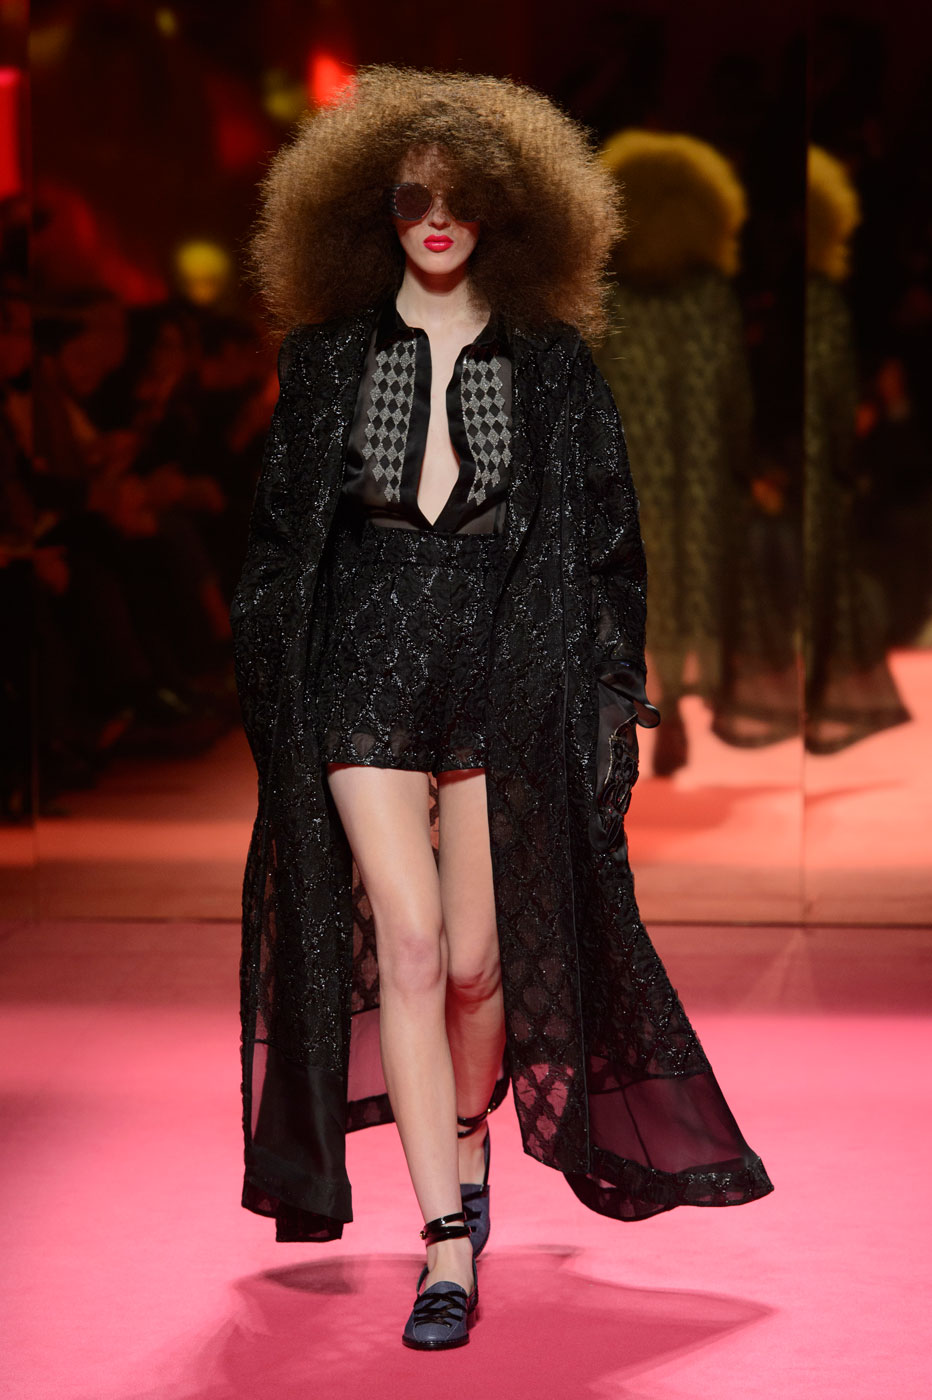 Schiaparelli-fashion-runway-show-haute-couture-paris-spring-summer-2015-the-impression-32